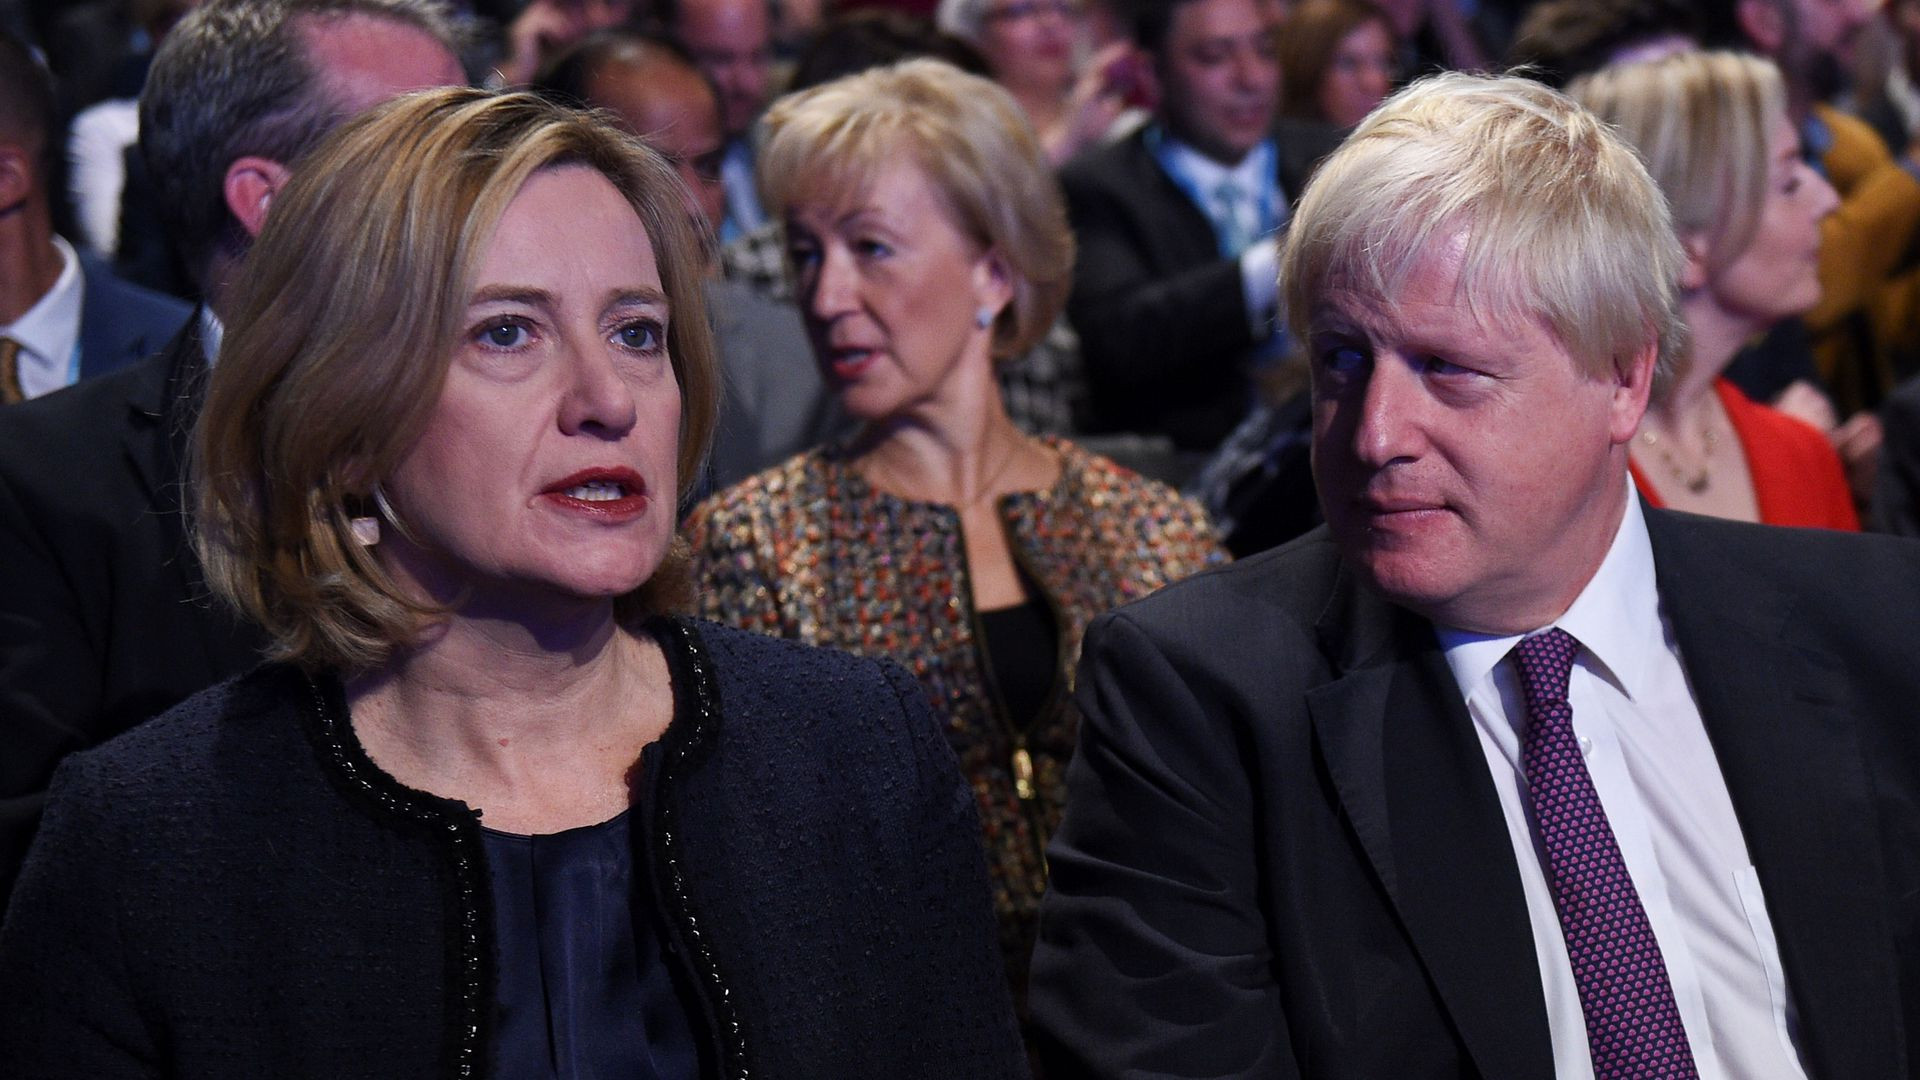 Amber Rudd and Boris Johnson at the Conservative Party annual conference at the Manchester Central Convention Centre in Manchester, northwest England, on October 4, 2017